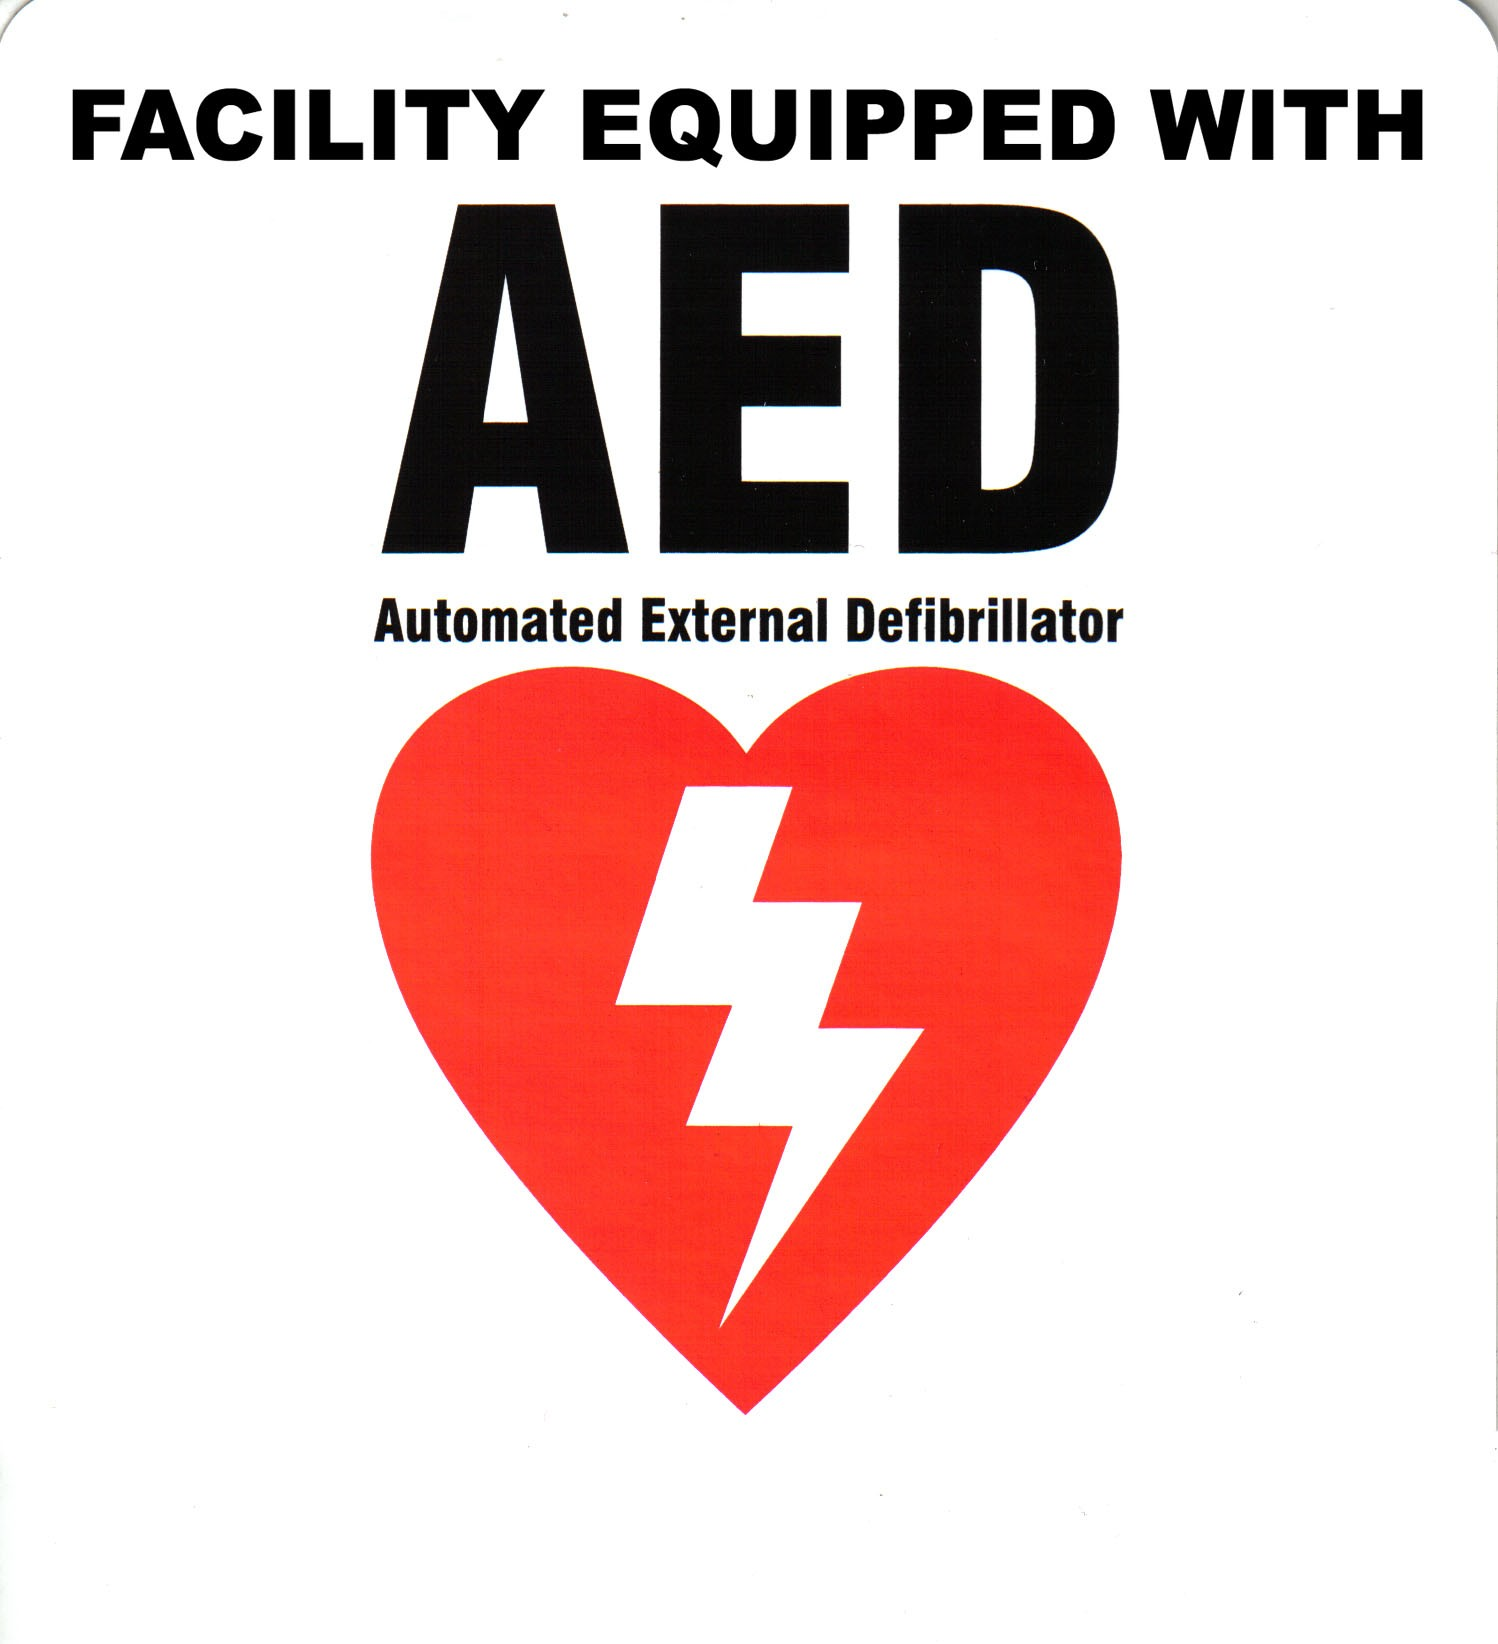 AED Interior Window Decal image